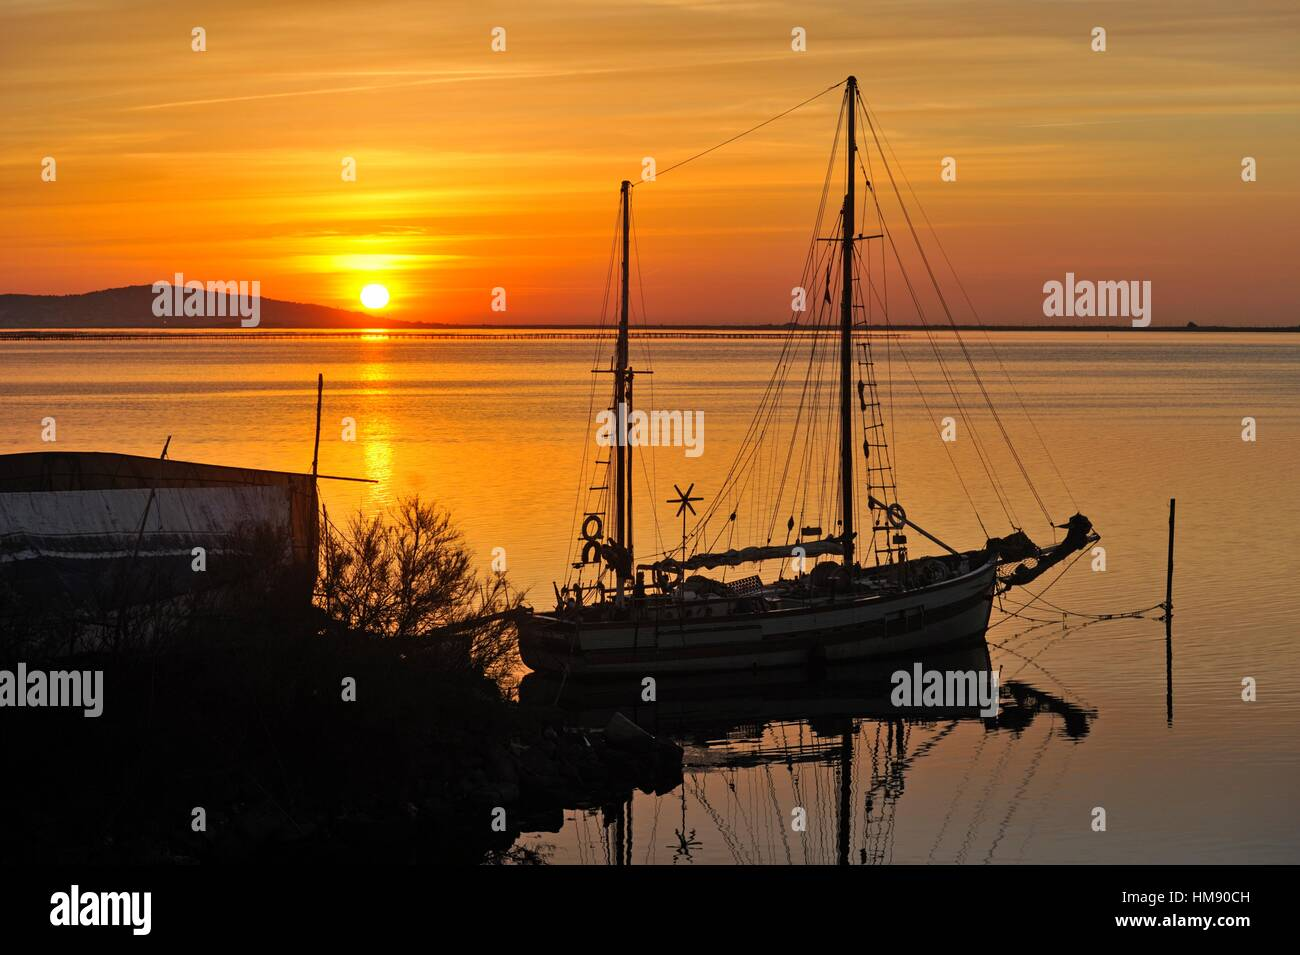 ketch sailing boat at anchor on Etang de Thau, Marseillan, Herault department, Languedoc-Roussillon region, France, - Stock Image